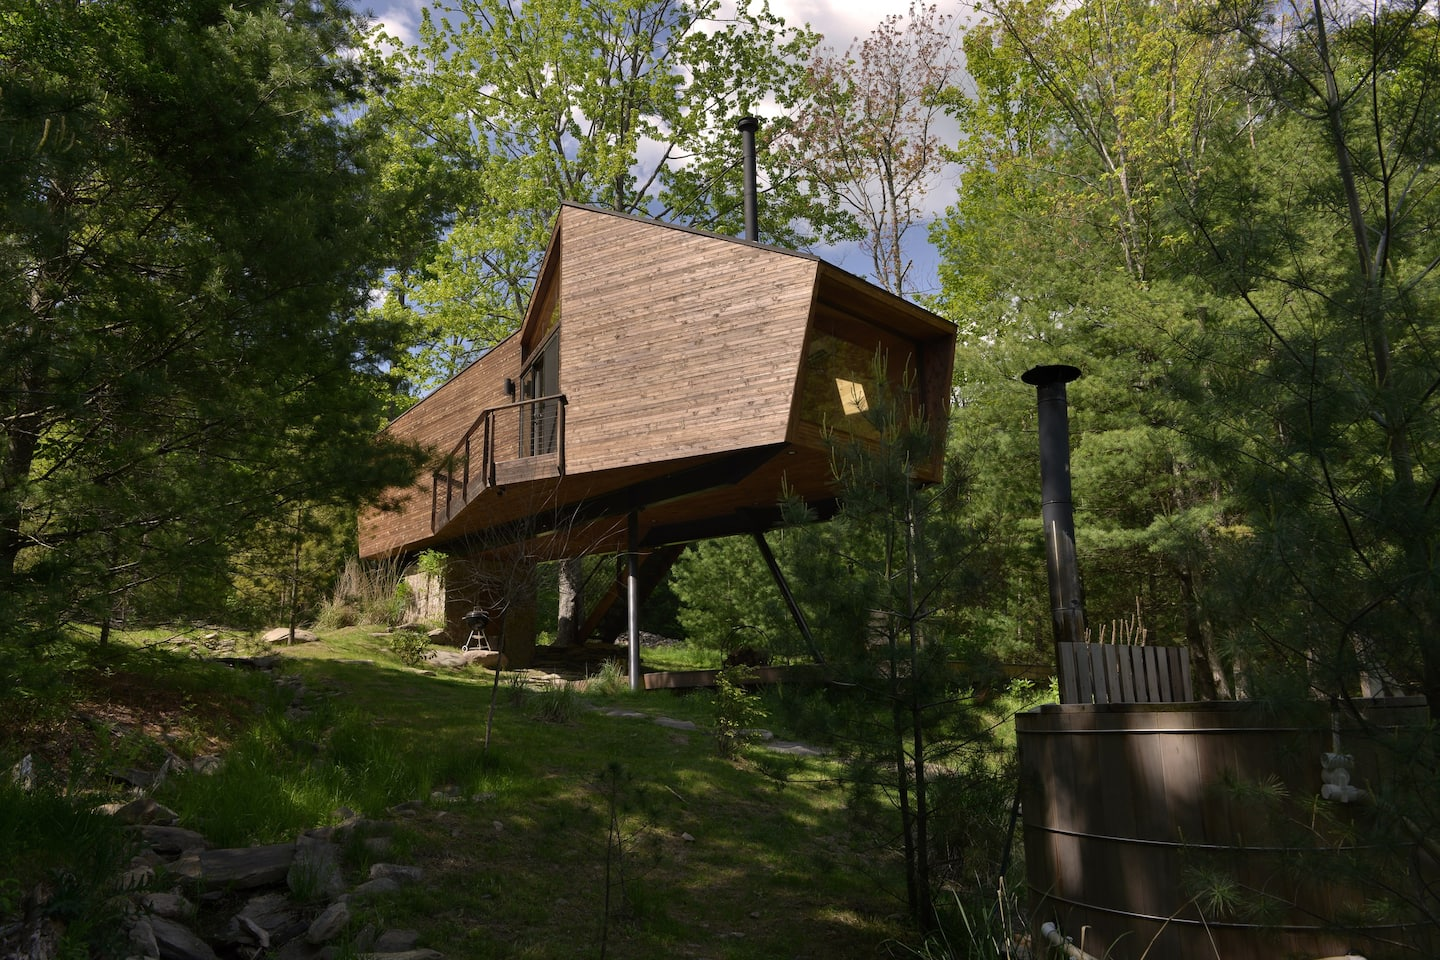 Willow Treehouse - secluded, unique, romanticv